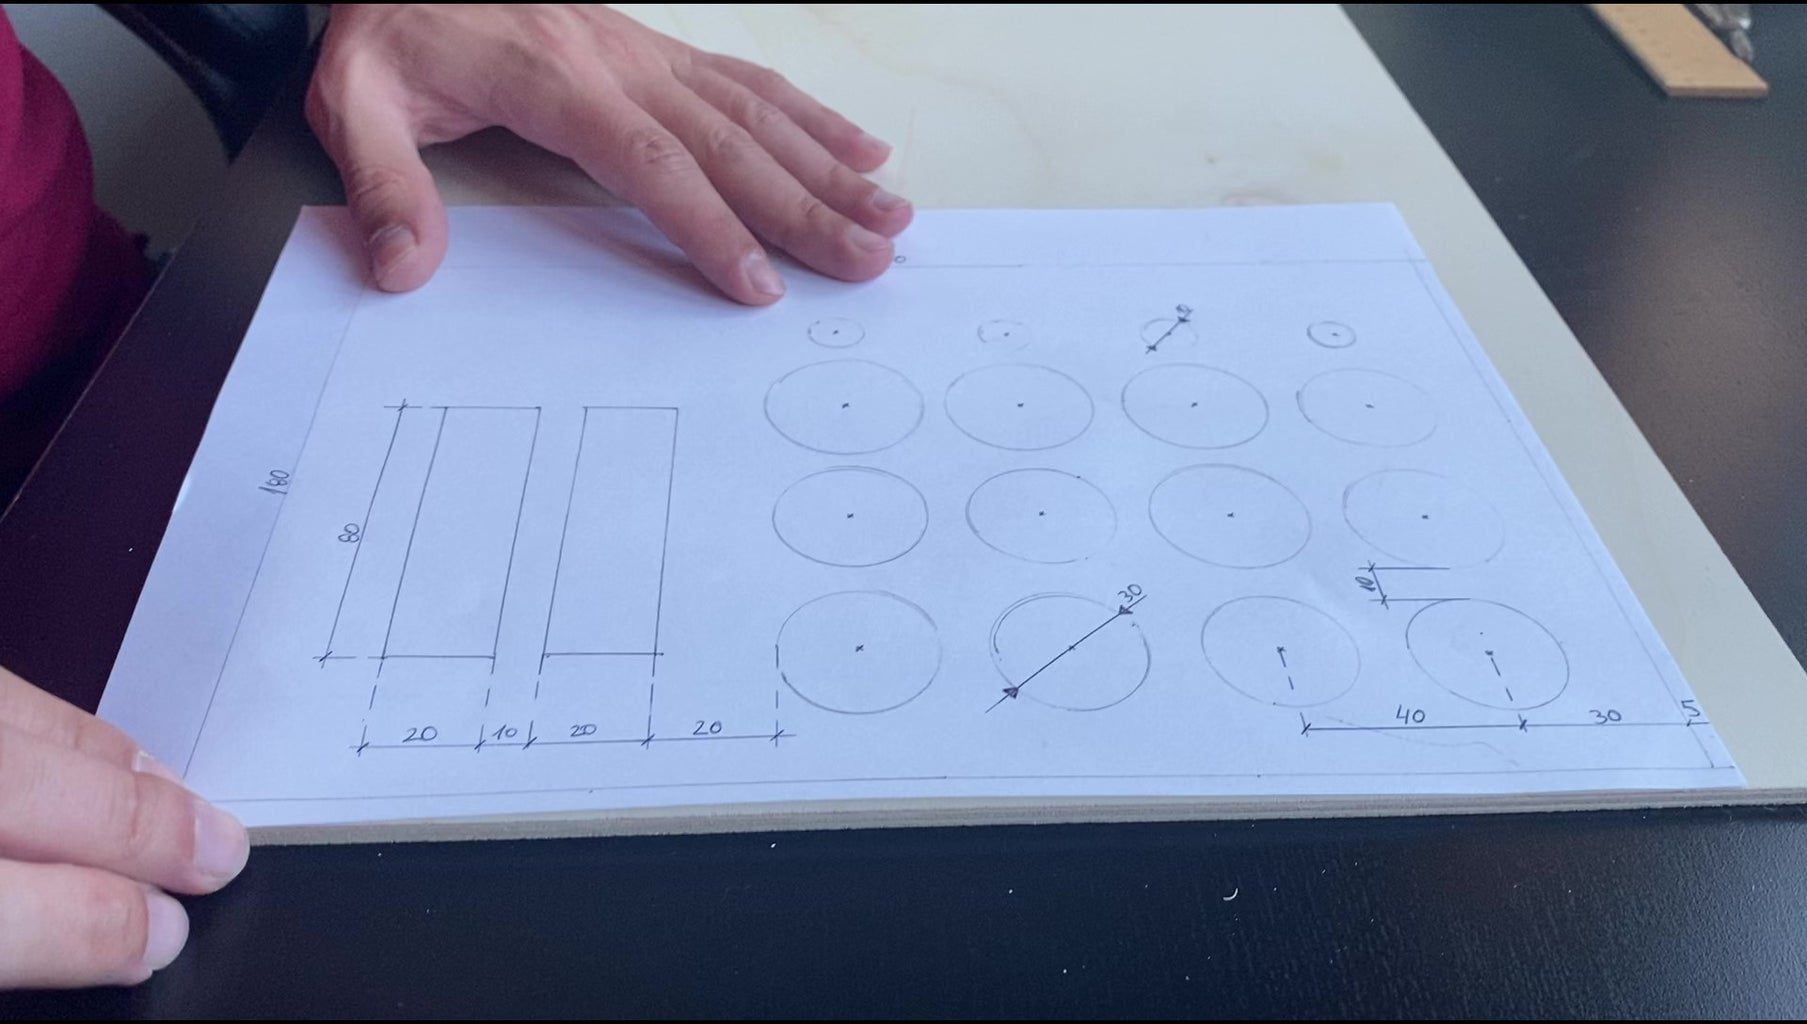 Sketching and Building the Interface